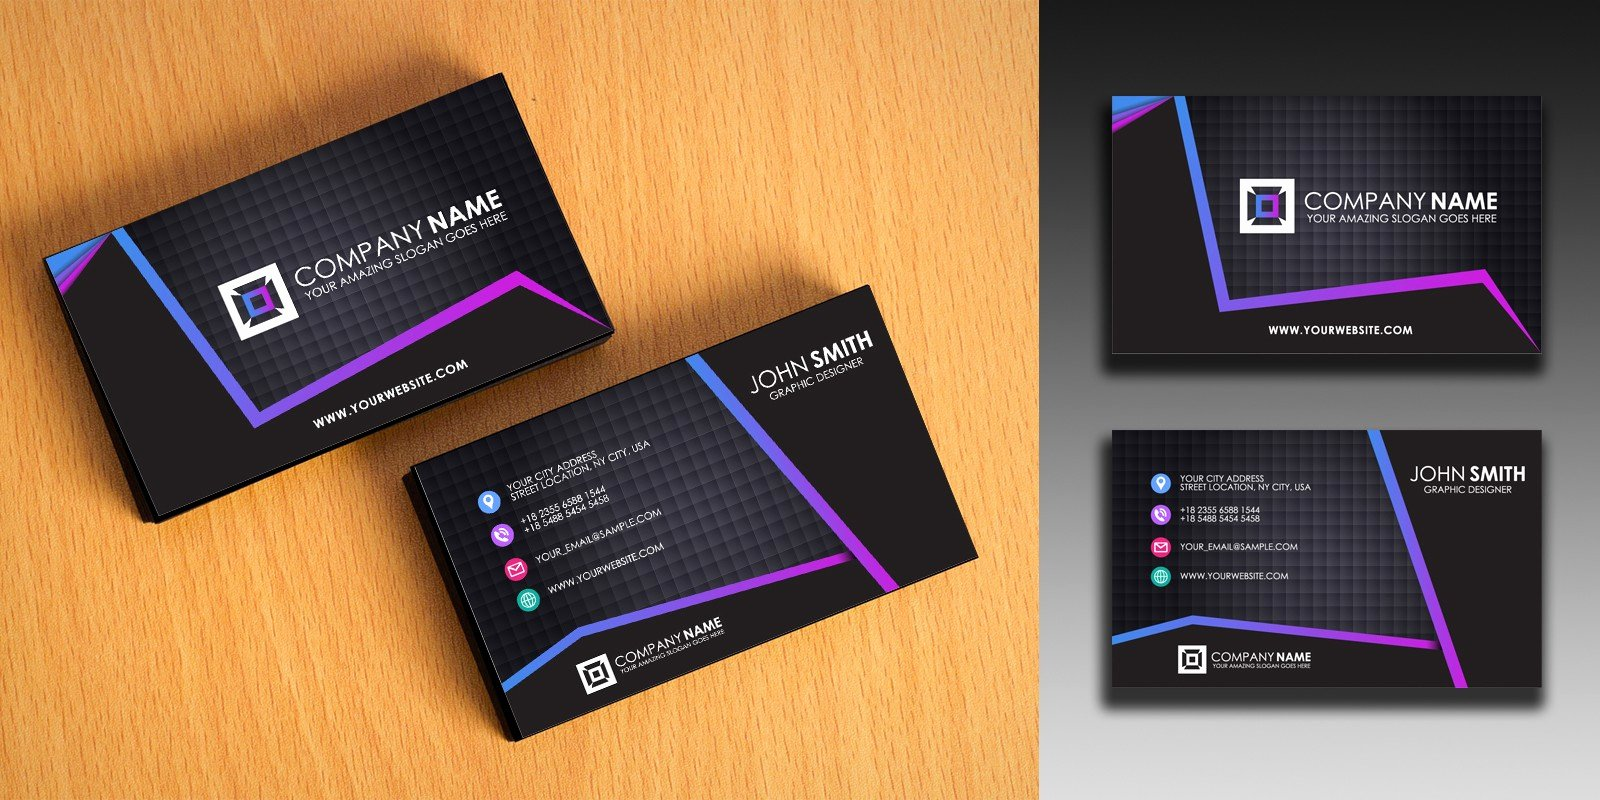 Simple Business Card Template Beautiful Clean and Simple Business Card Template